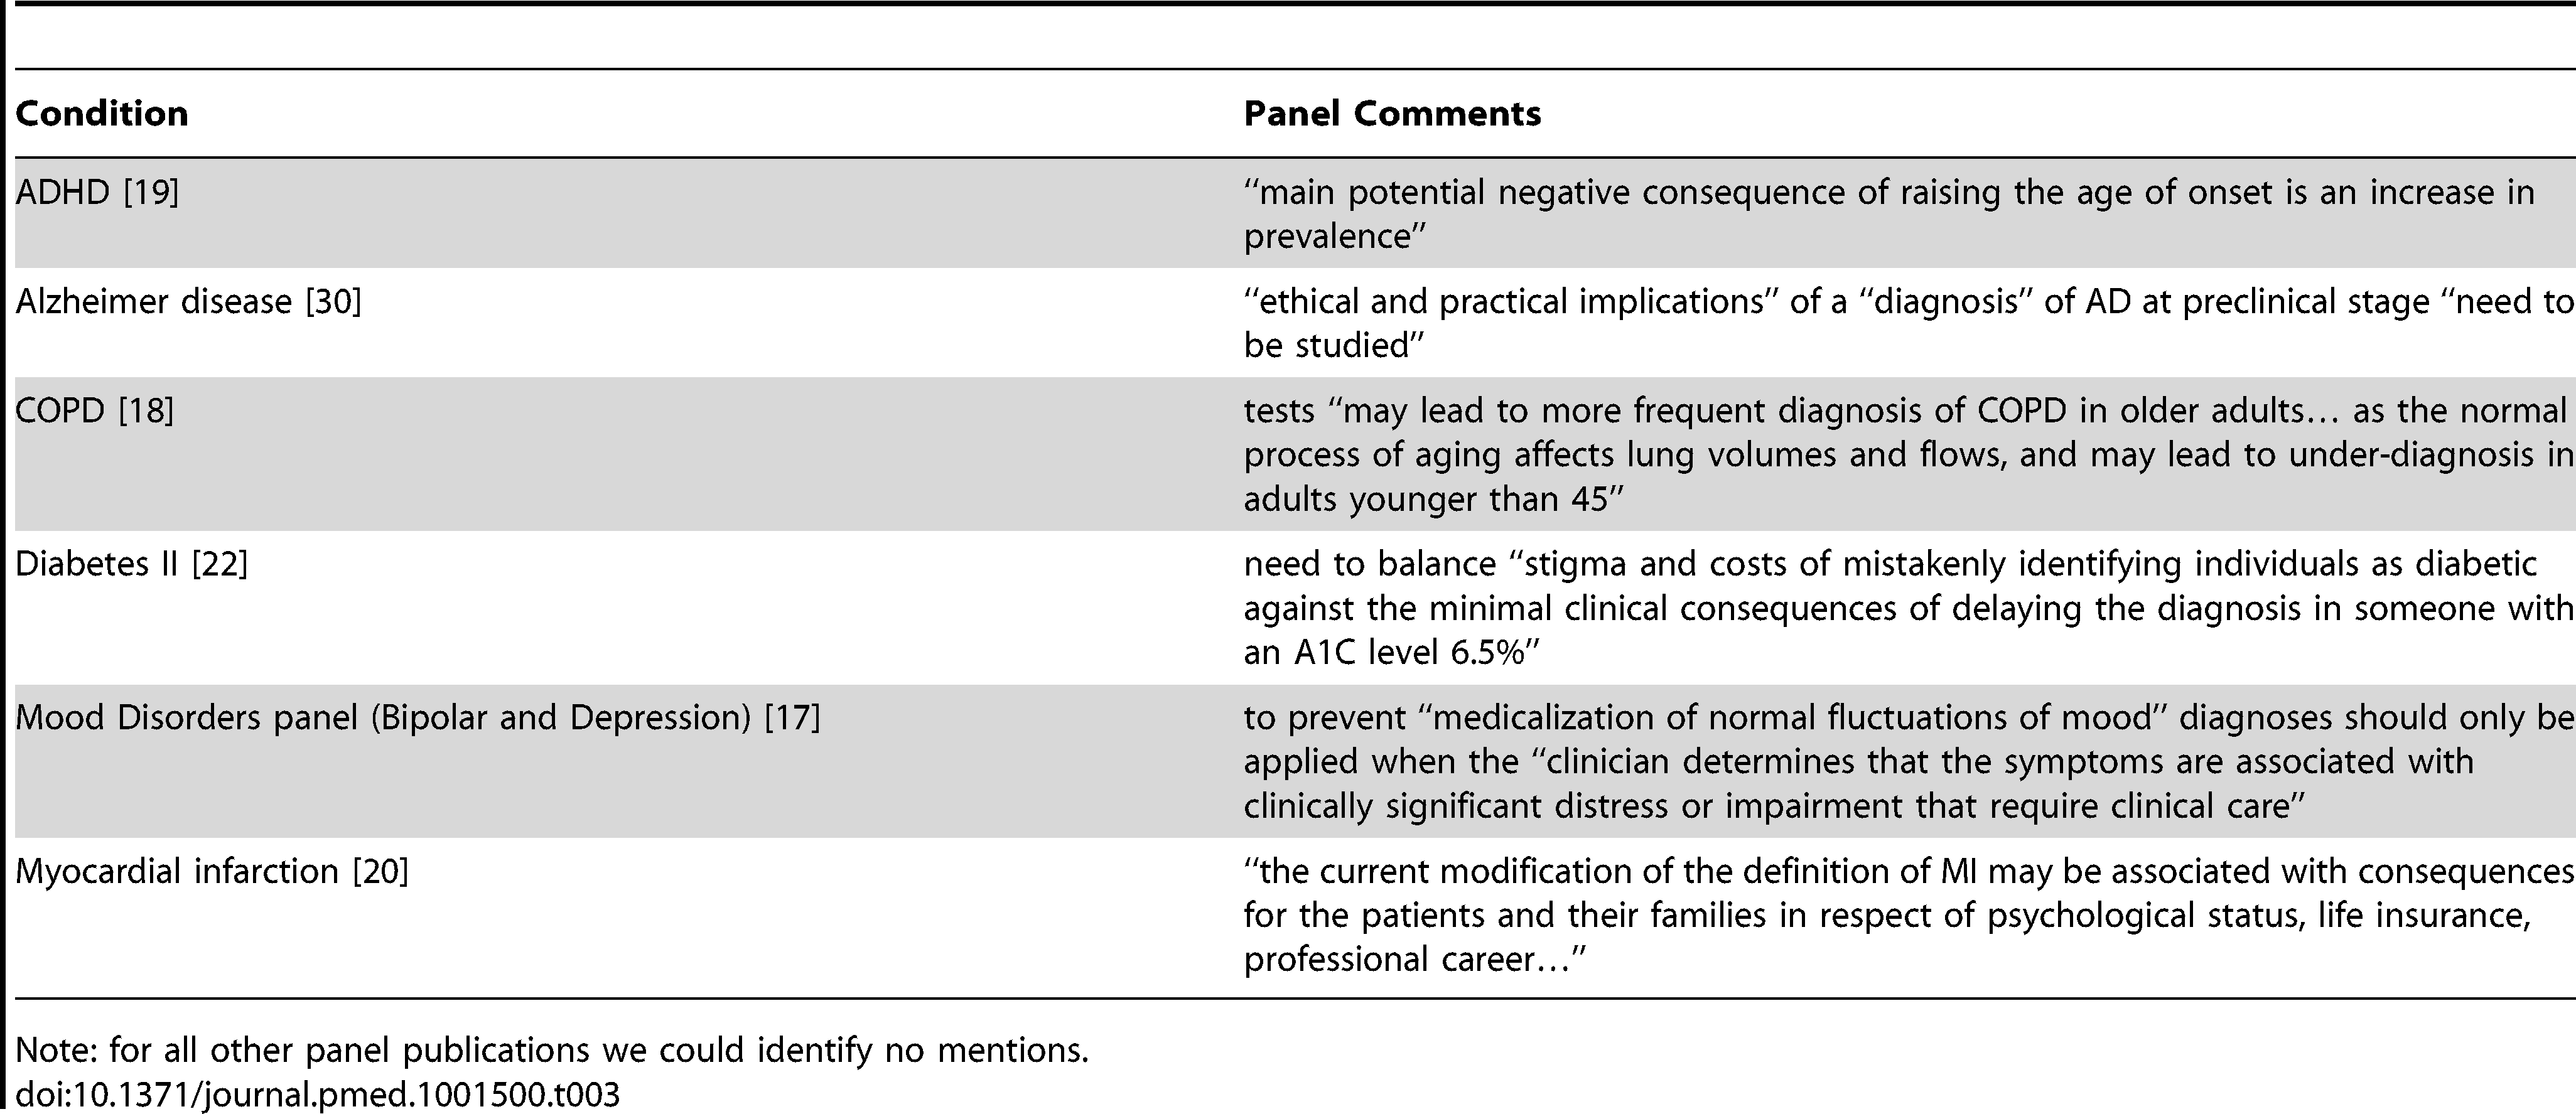 Mention of possible harms of proposed changes to definitions.